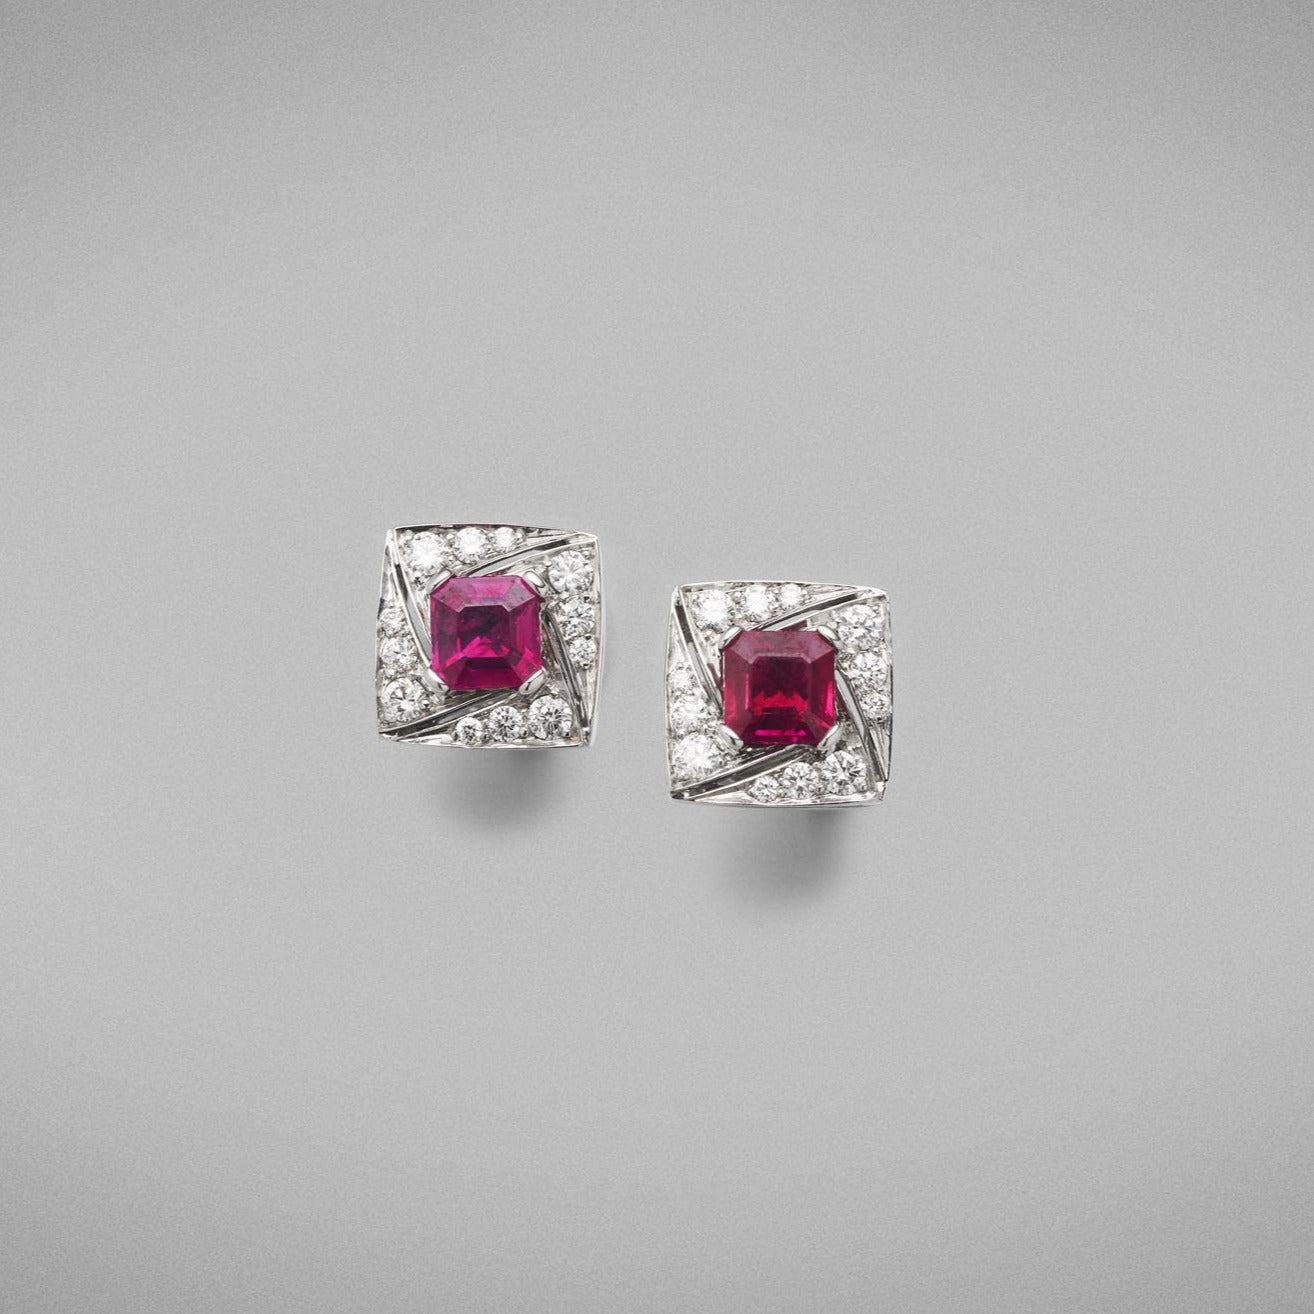 A pair of BUNDA 'Arya' Ruby and earrings in 18 carat white gold, featuring a pair of Asscher cut rubies, claw set to the centre and surrounded with thread-set round brilliant cut diamonds, with a post and butterfly fitting.  Characteristics of Ruby: 2 = 1.51ct.  Provenance: Burma (Myanmar)  Characteristics of diamonds: 24 = 0.36ct, F colour, VS clarity.